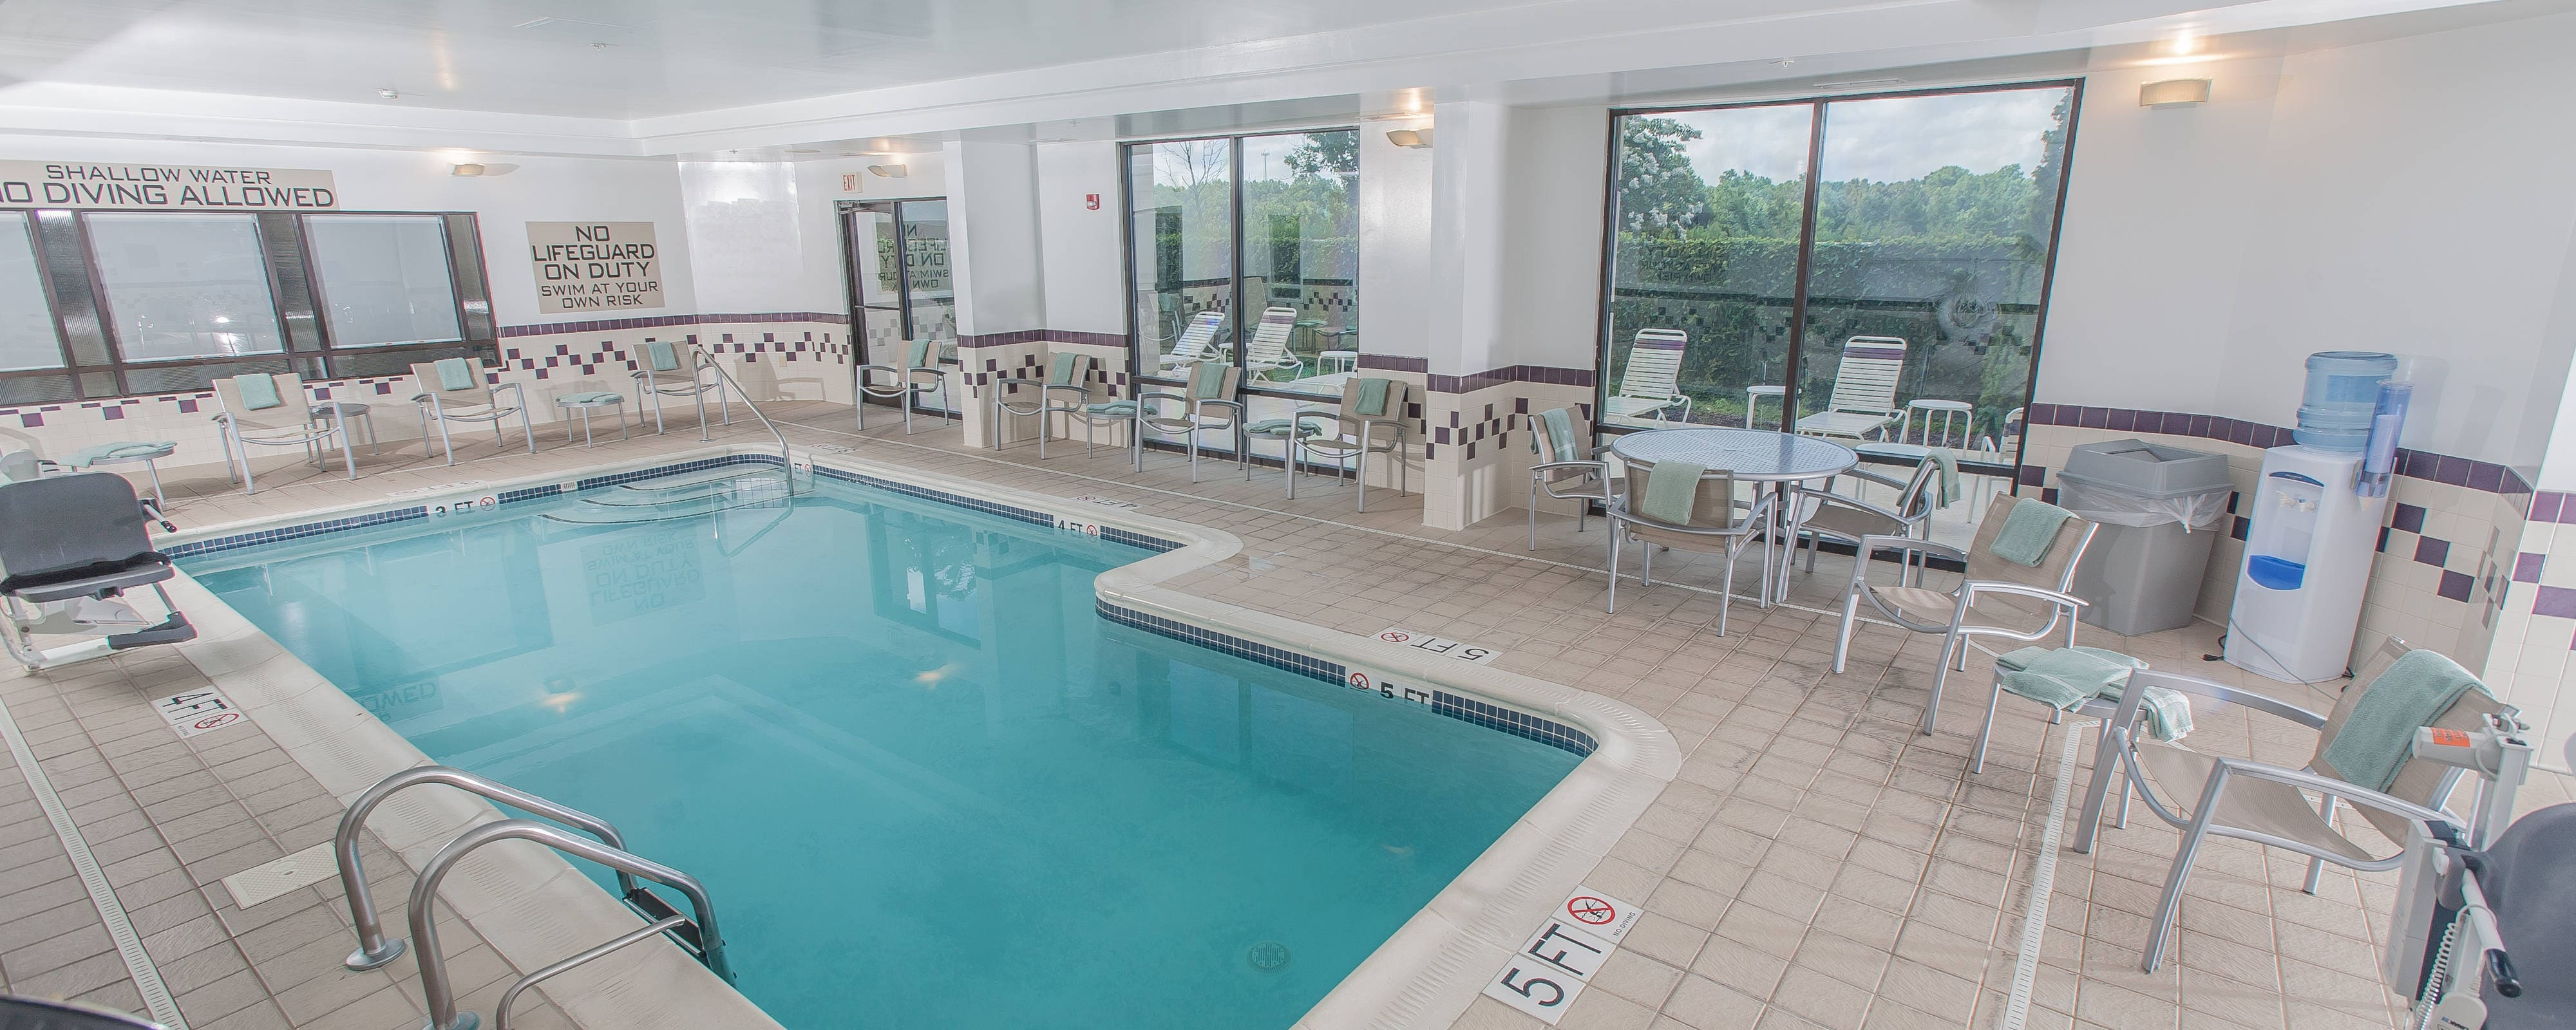 Piscina del SpringHill Suites by Marriott en Florence